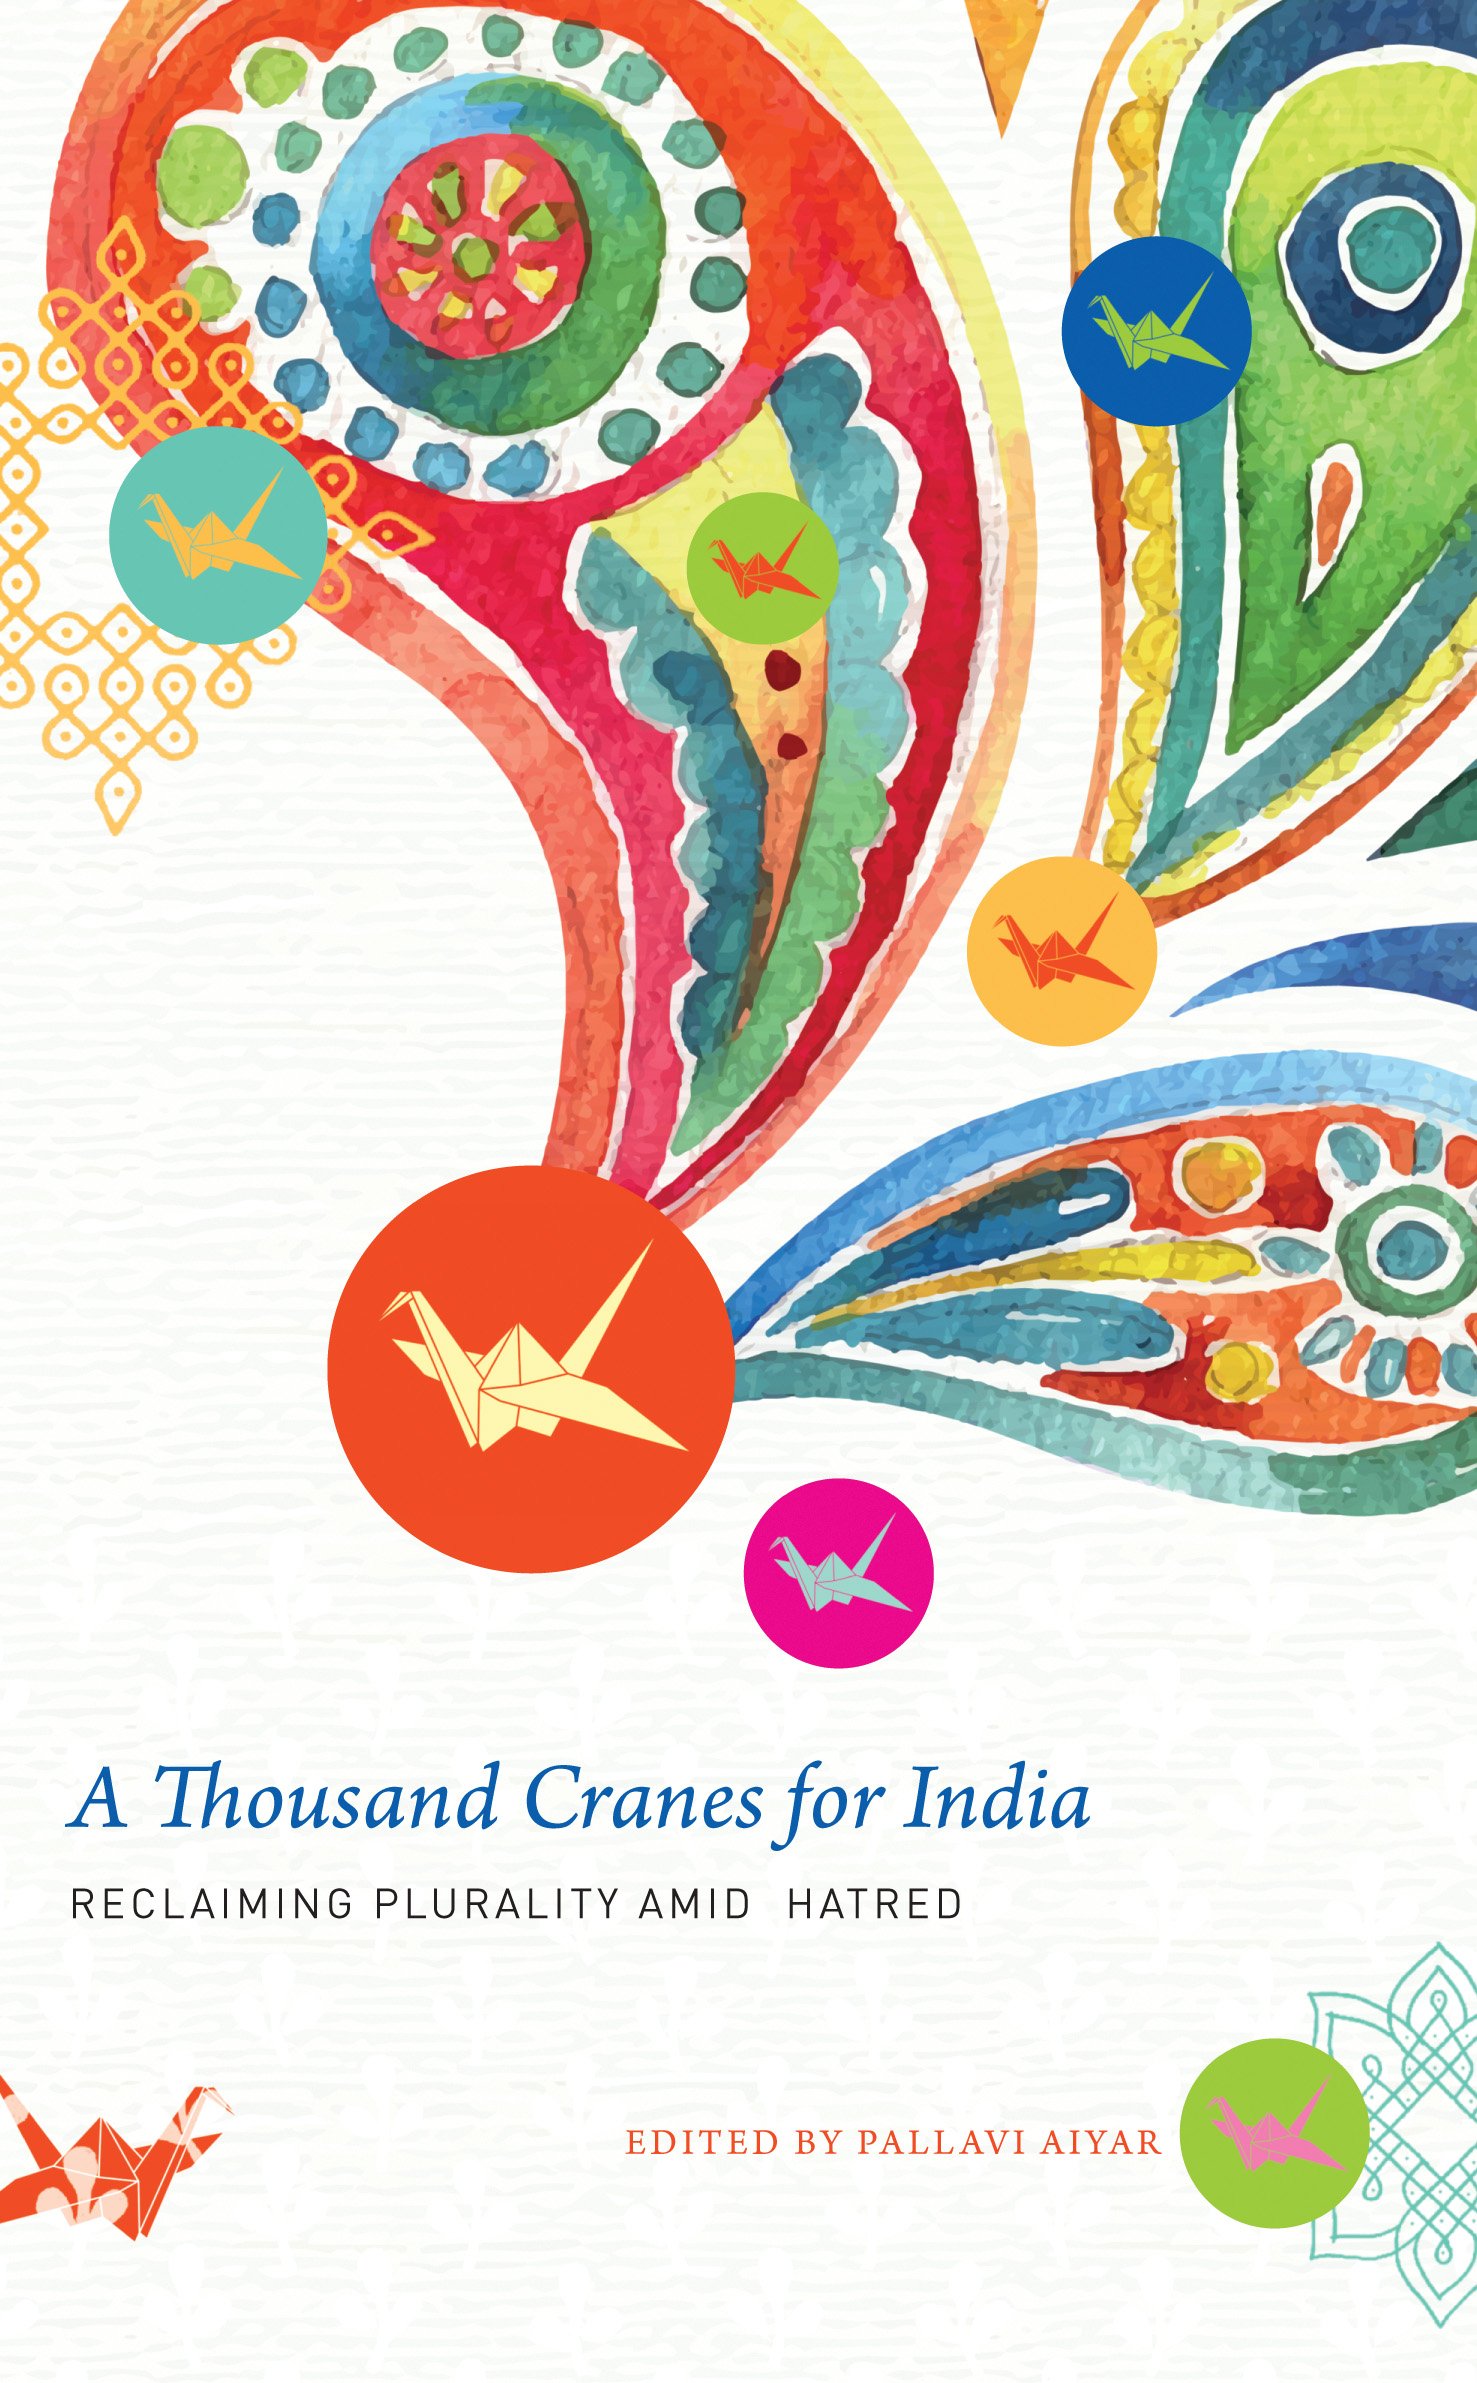 A Thousand Cranes for India: Reclaiming Plurality amid Hatred by Pallavi Aiyar | Seagull Books